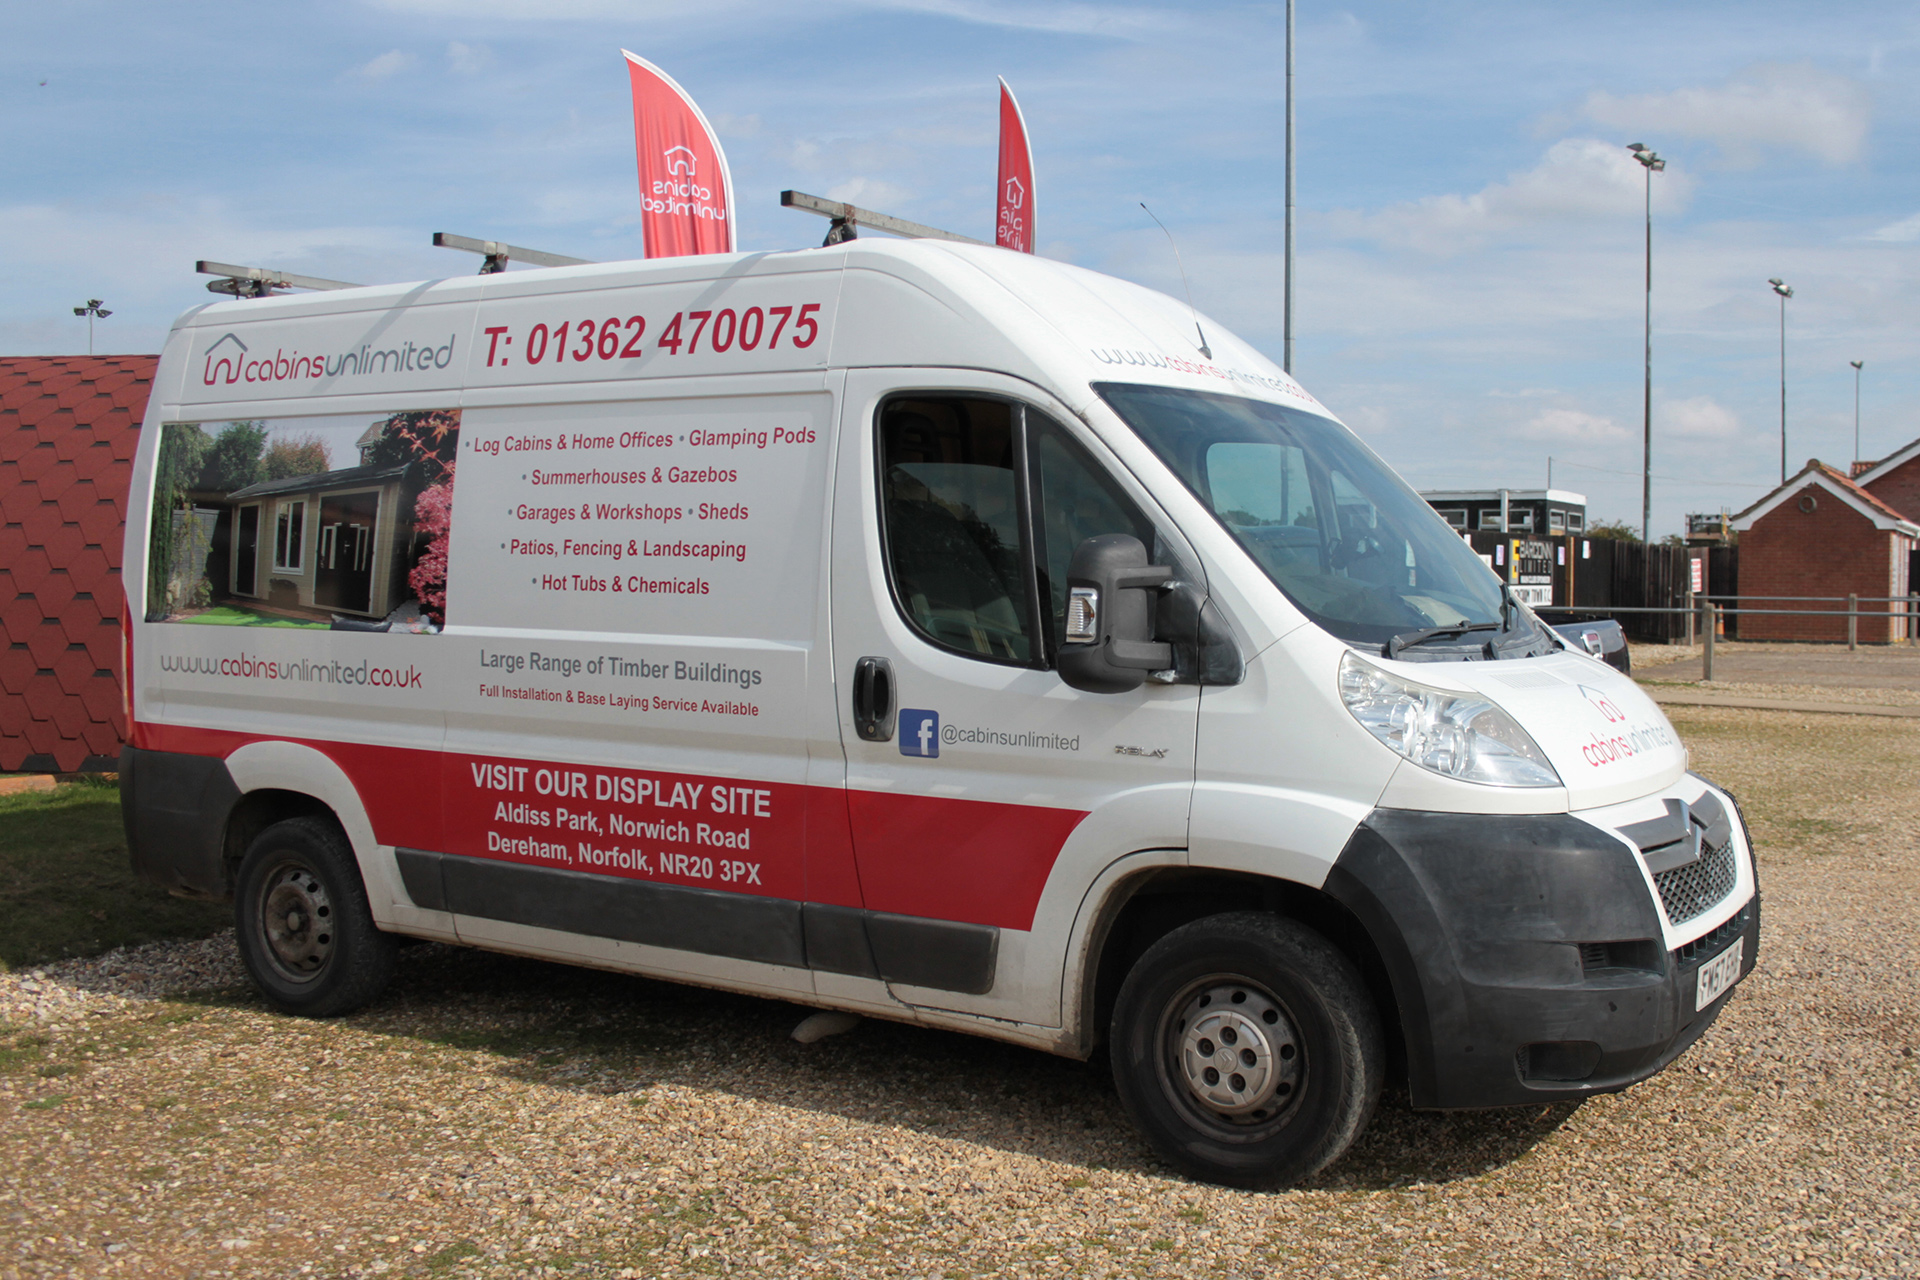 Cabins Unlimited van livery